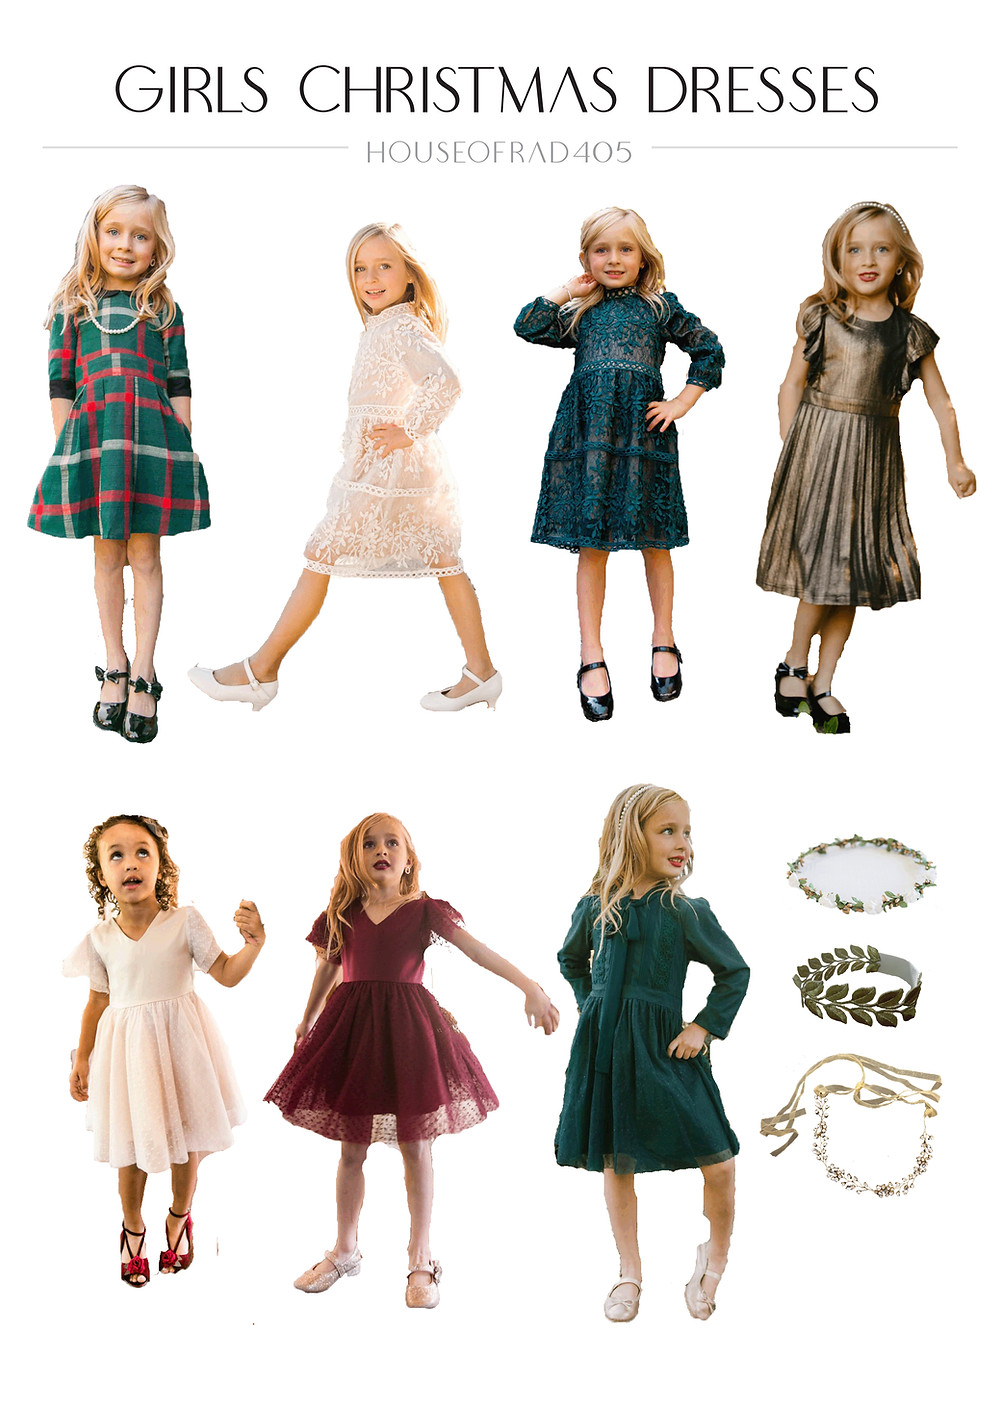 Girls Christmas Dresses and Special Occasion Dresses